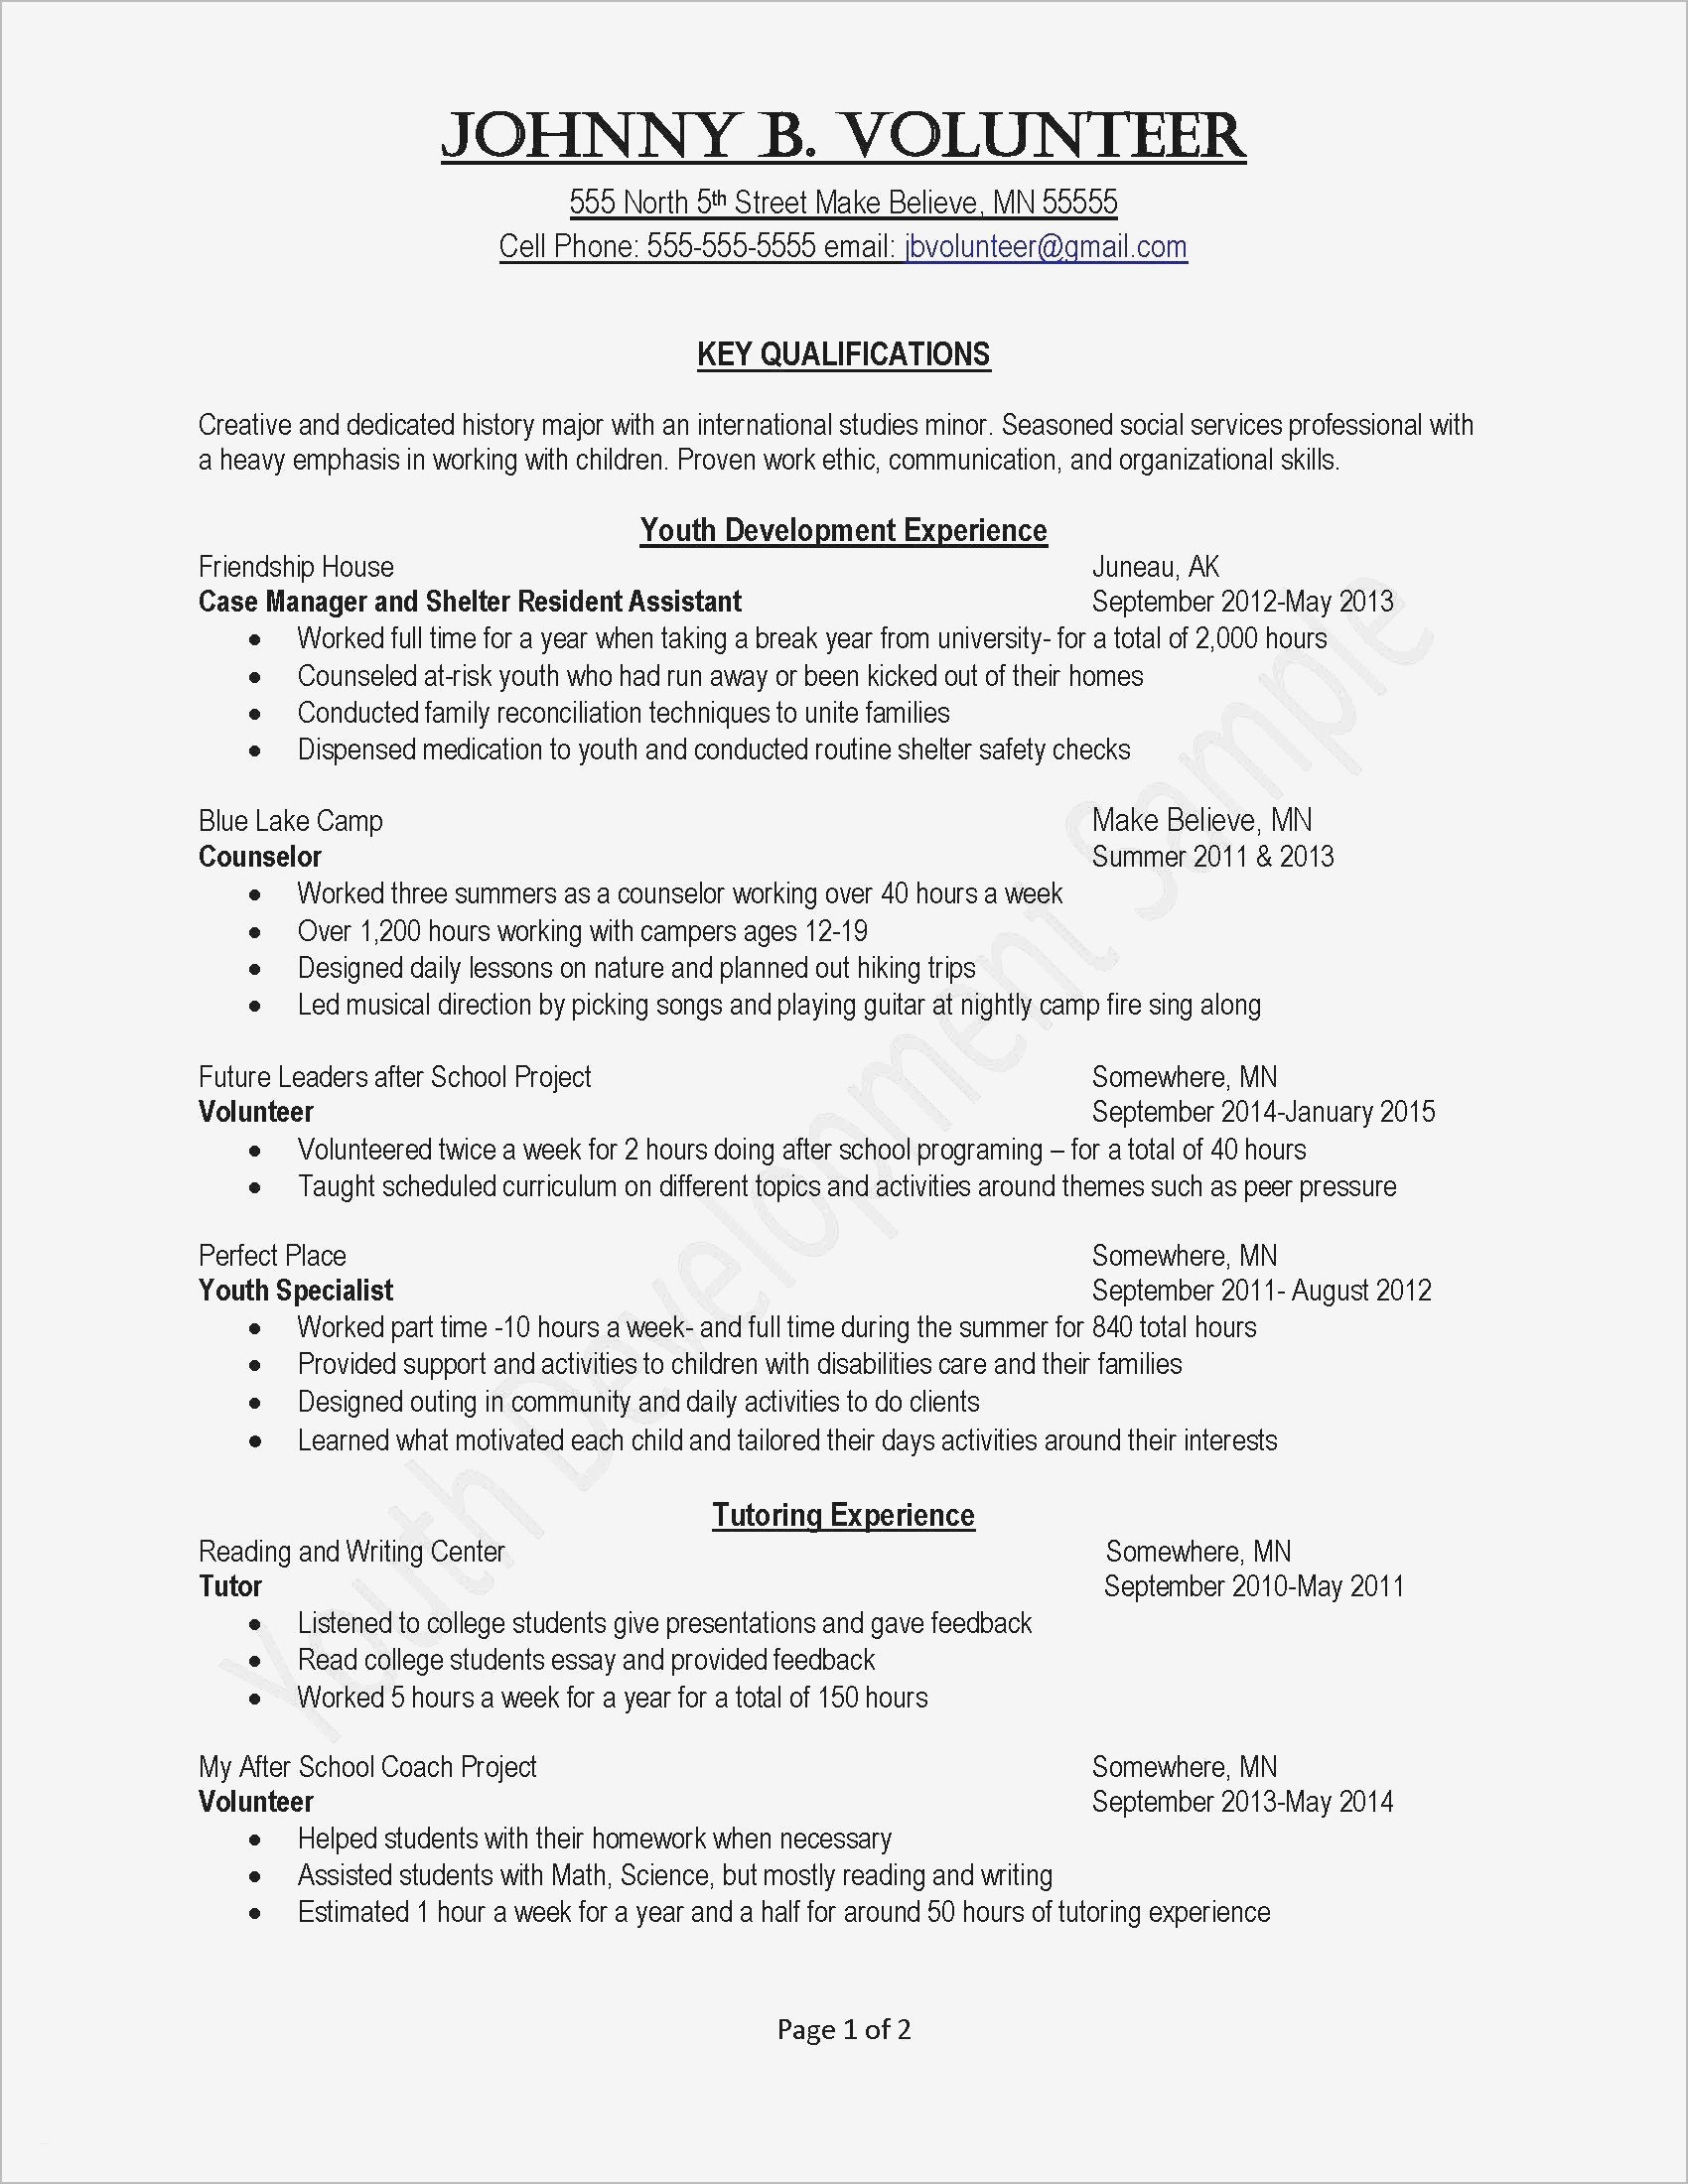 Free Resume Cover Letter Template - totally Free Resume Template Elegant Job Fer Letter Template Us Copy